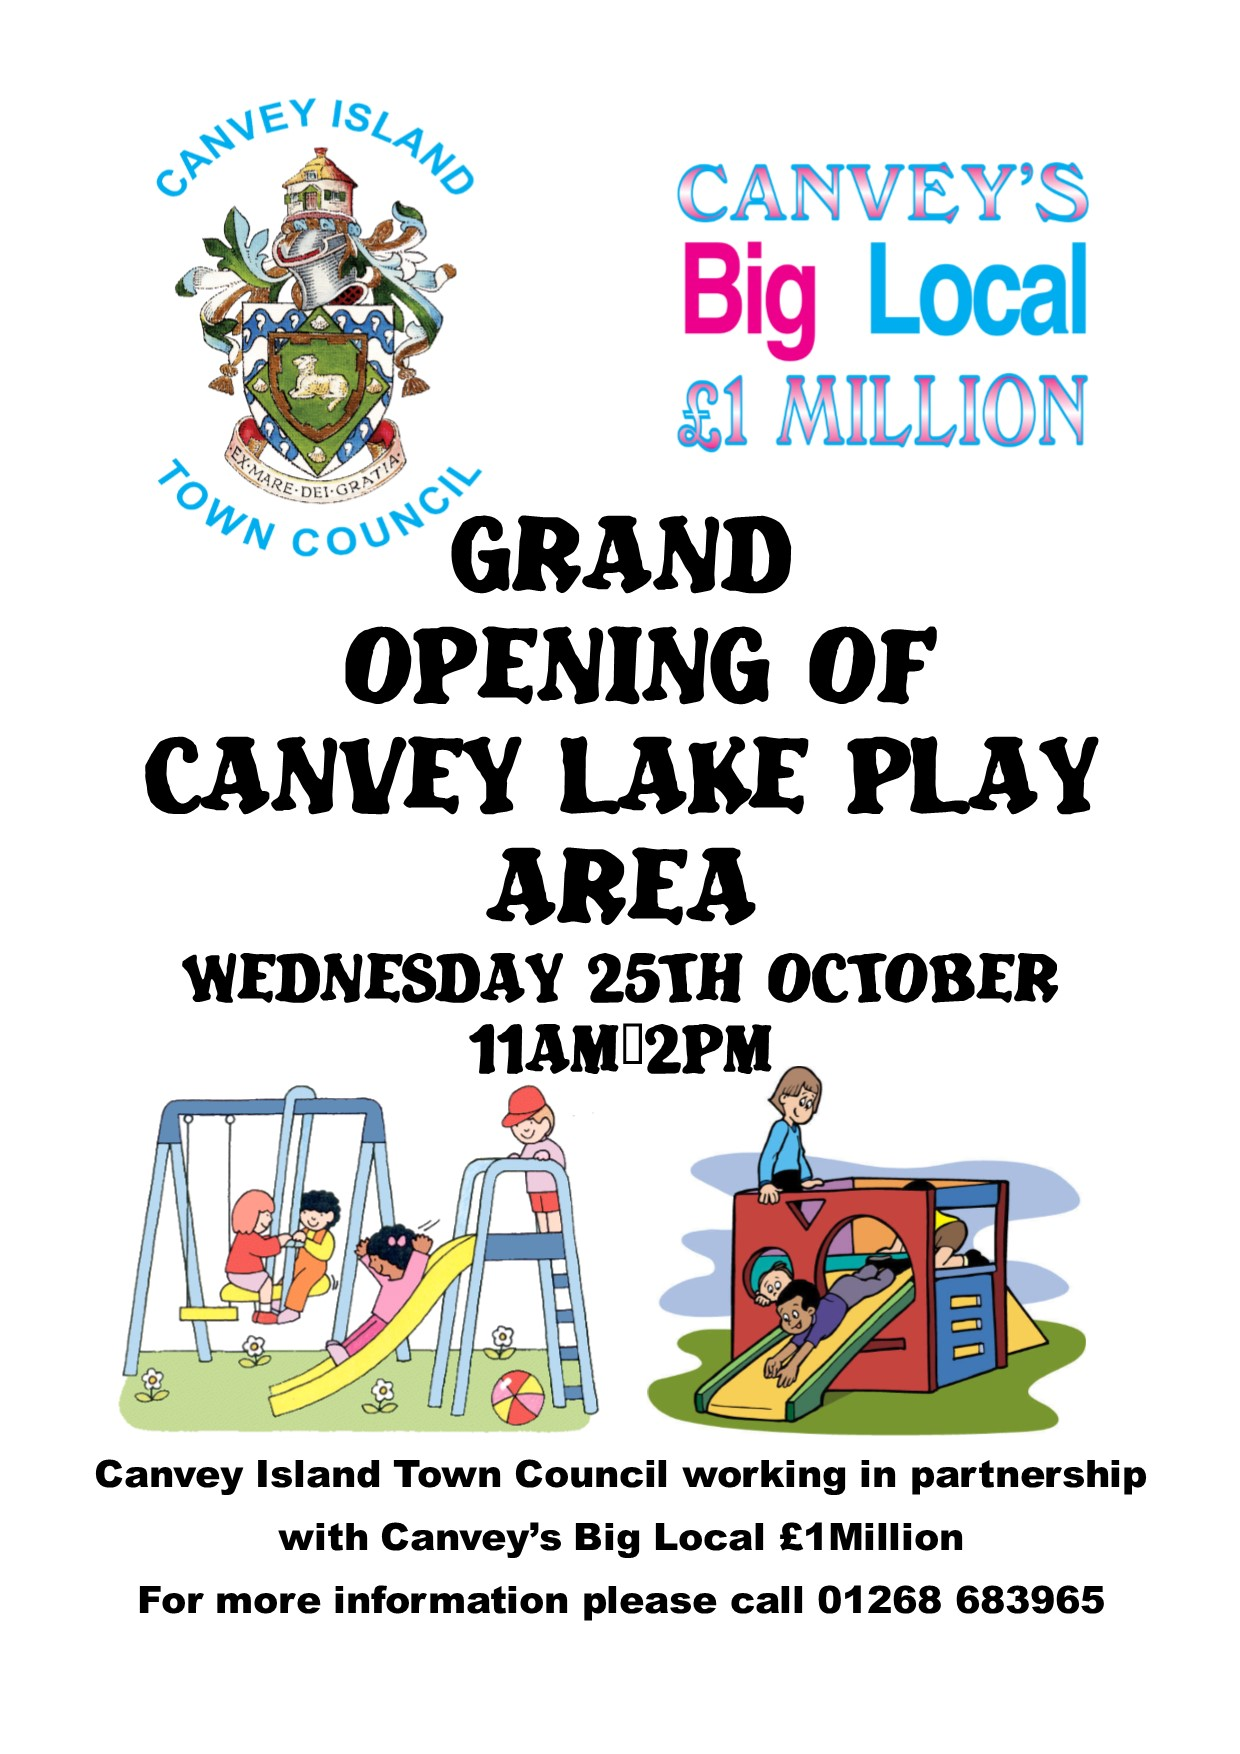 Canvey Lake Play Area Grand Opening